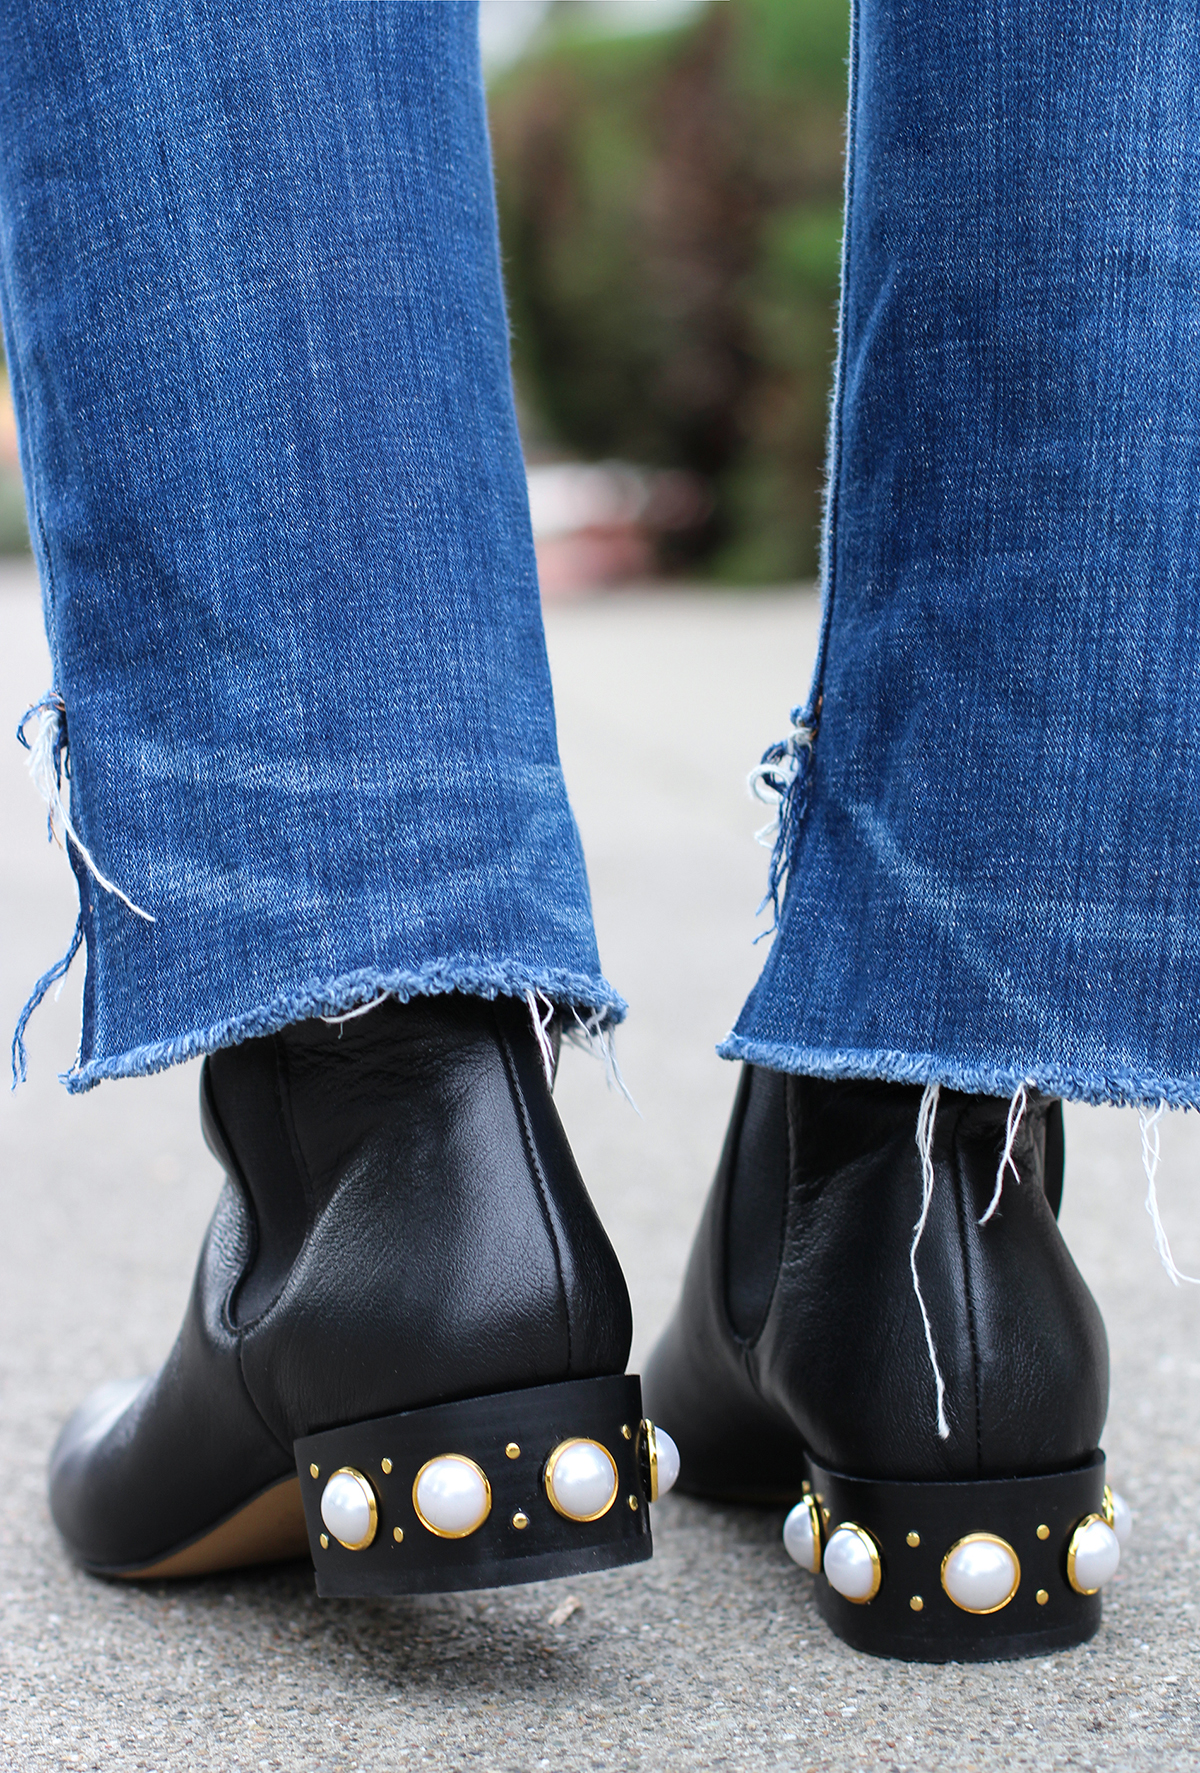 Diy Pearl Studded Boots Honestly Wtf